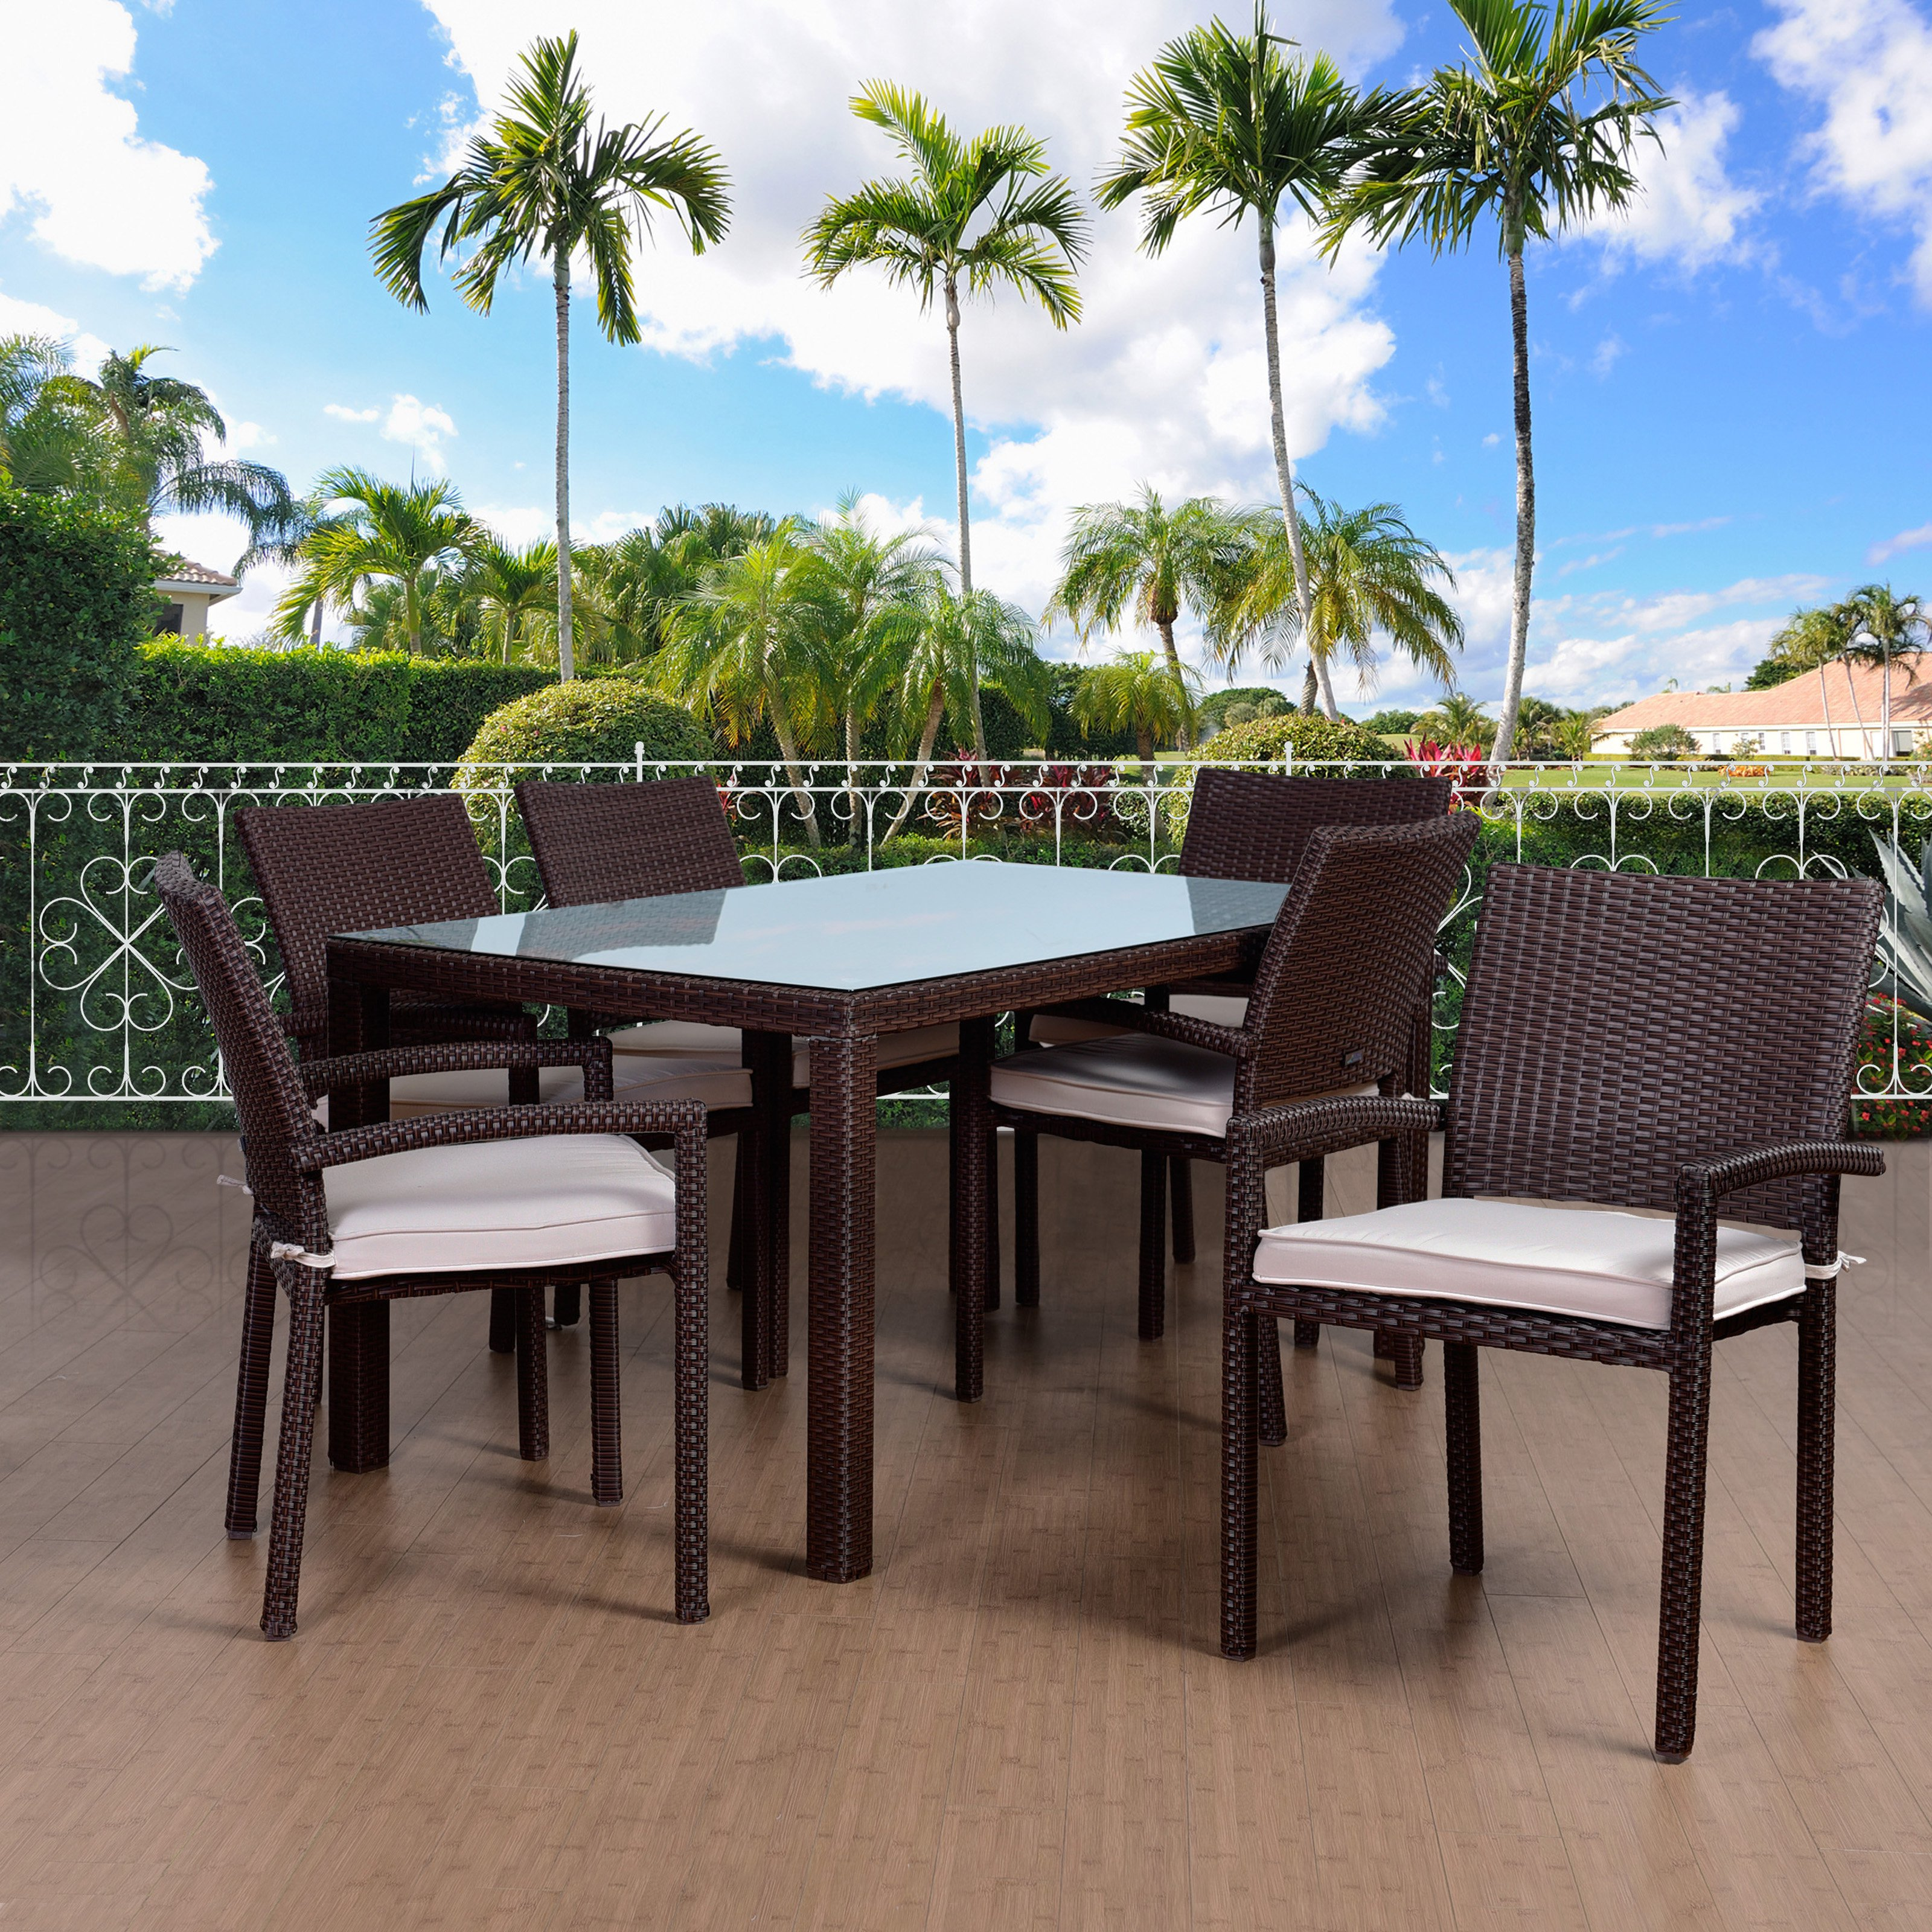 Atlantic Liberty Wicker 7 Piece Rectangular Patio Dining Set with Arm Chairs